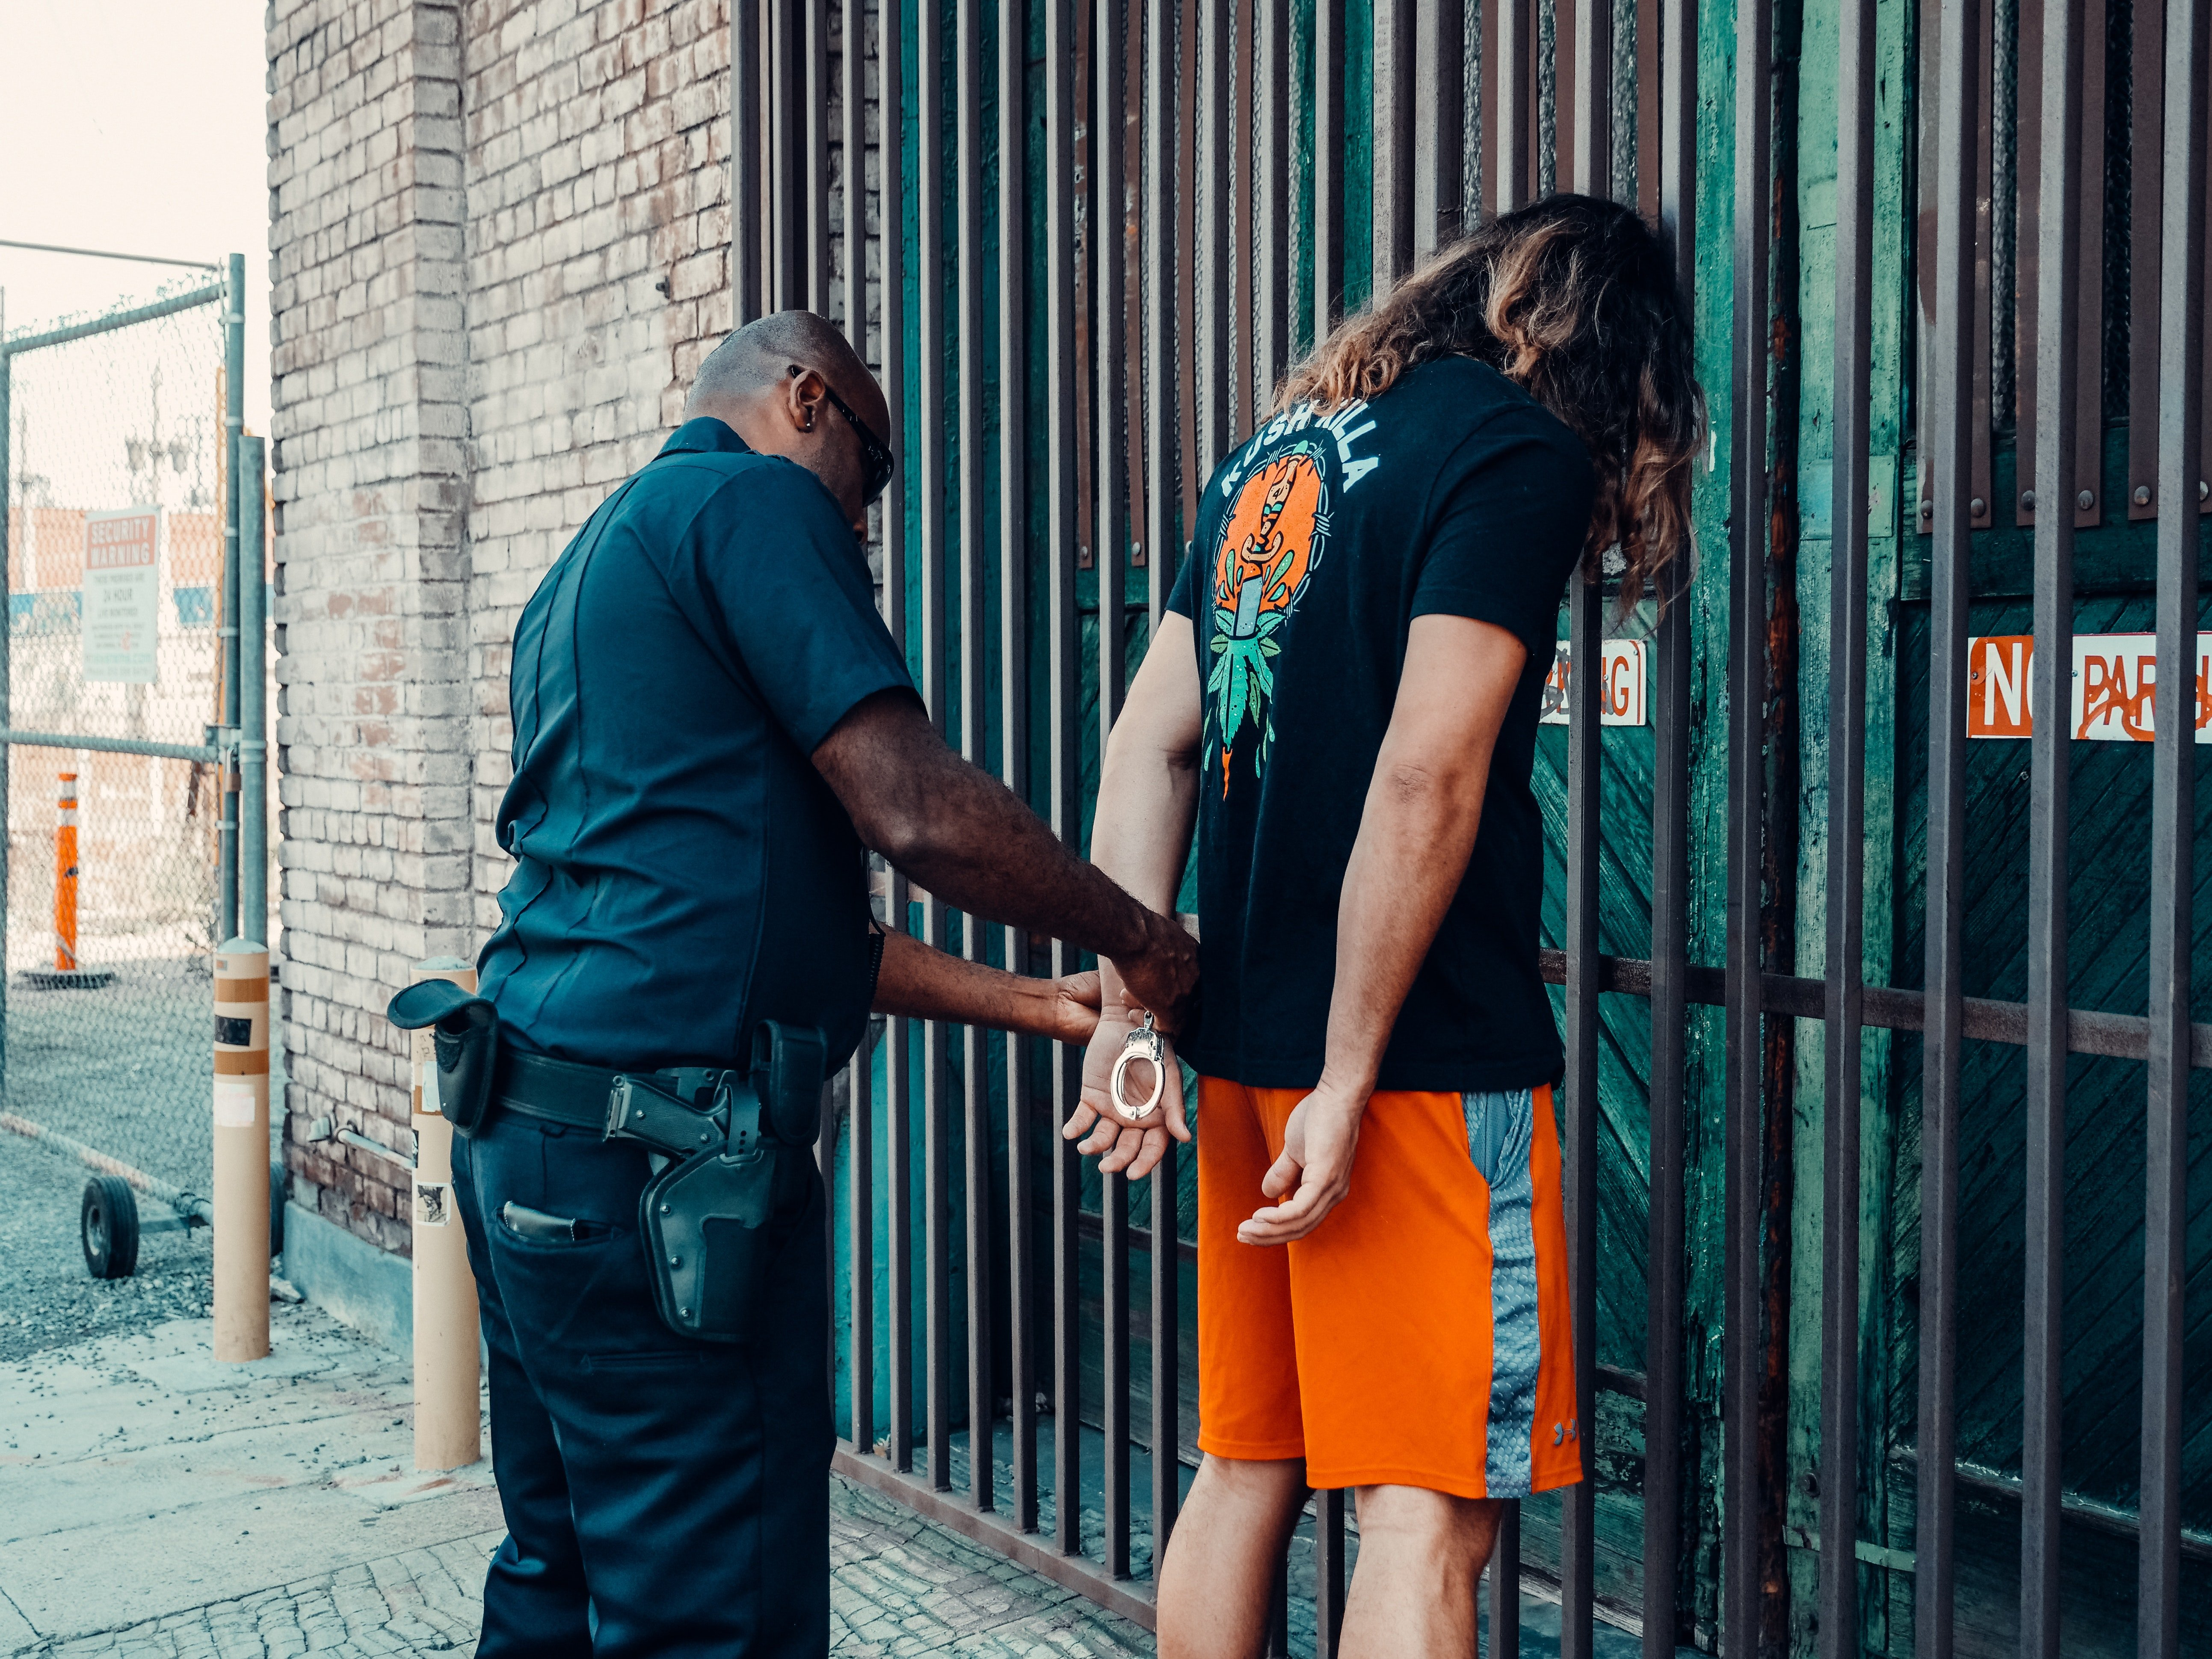 Pictured - A police officer apprehending a suspect   Source: Pexels